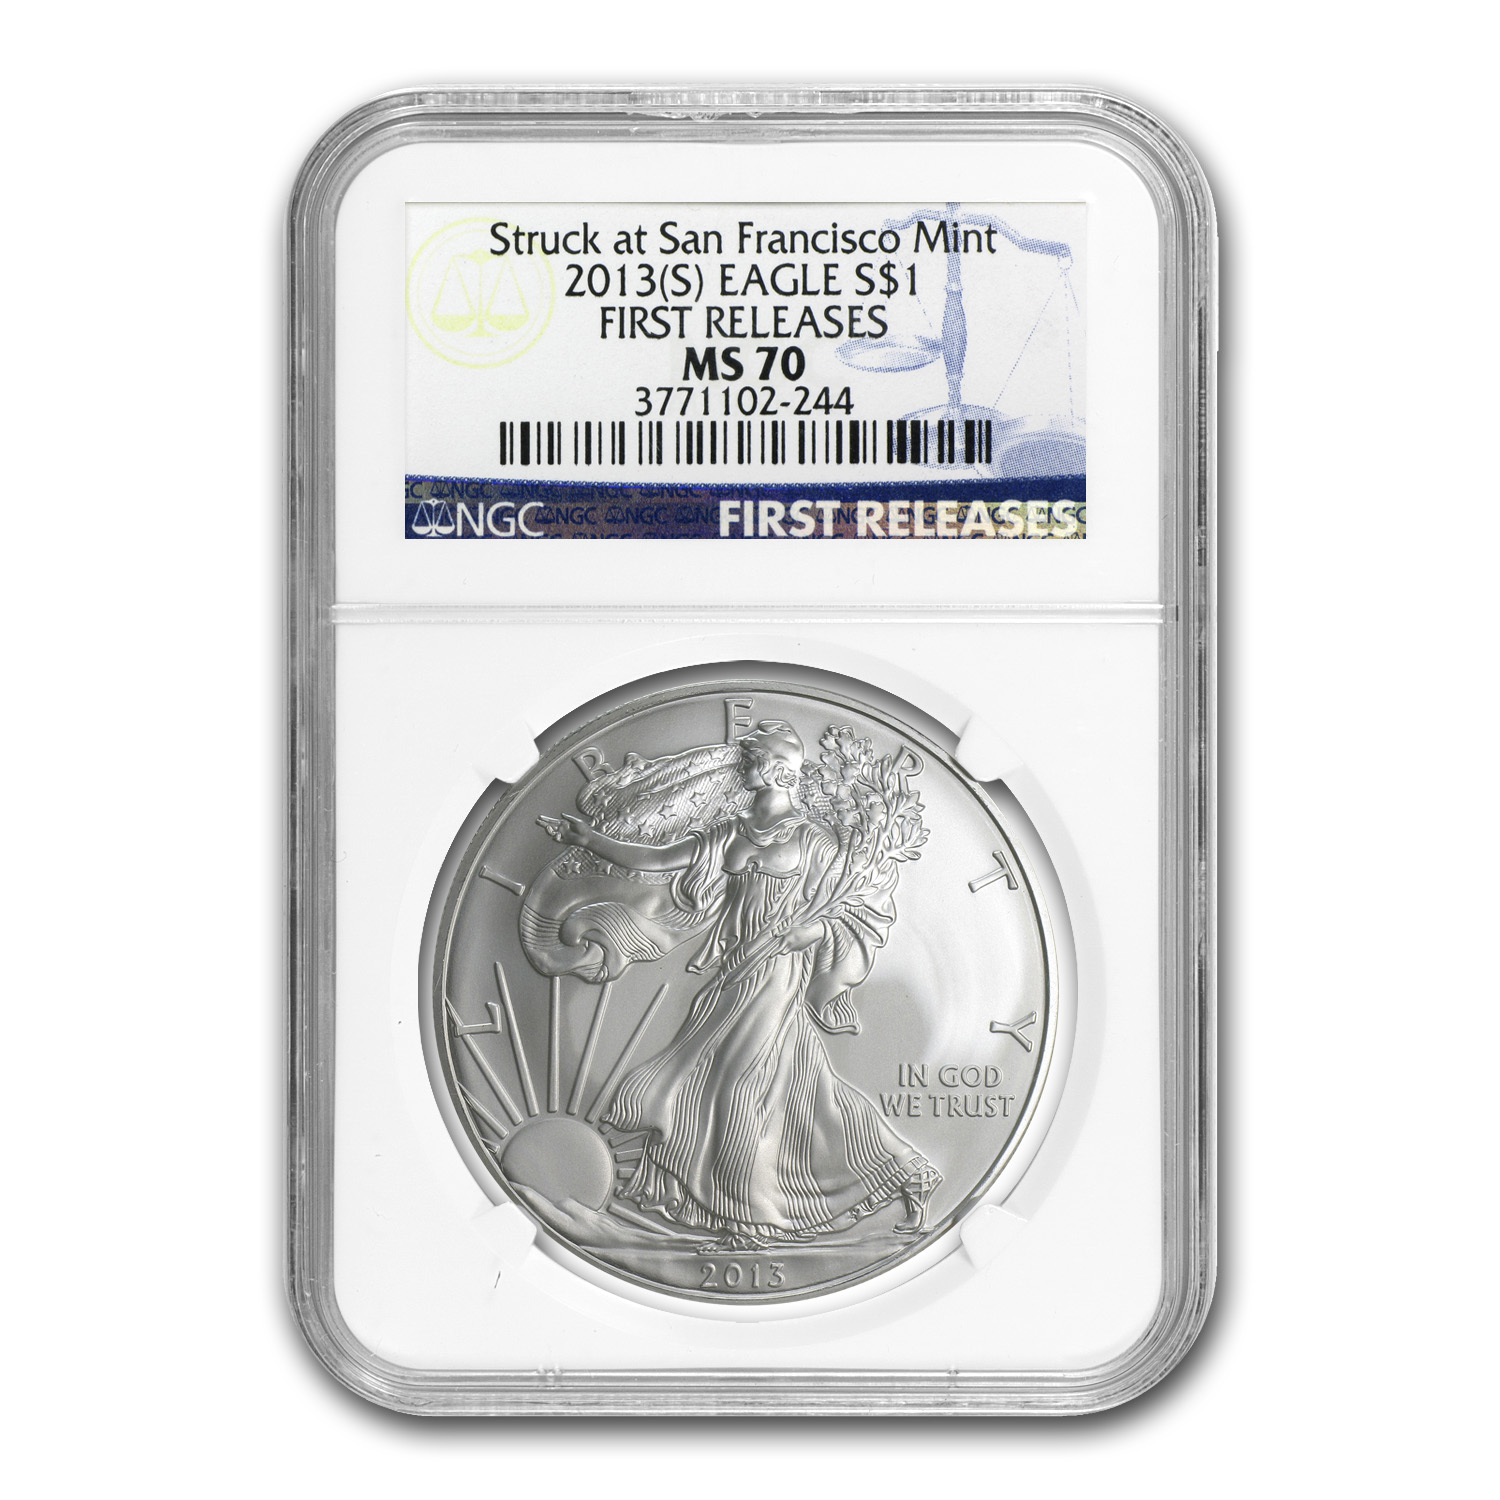 2013 (S) Silver American Eagle MS-70 NGC (First Releases)